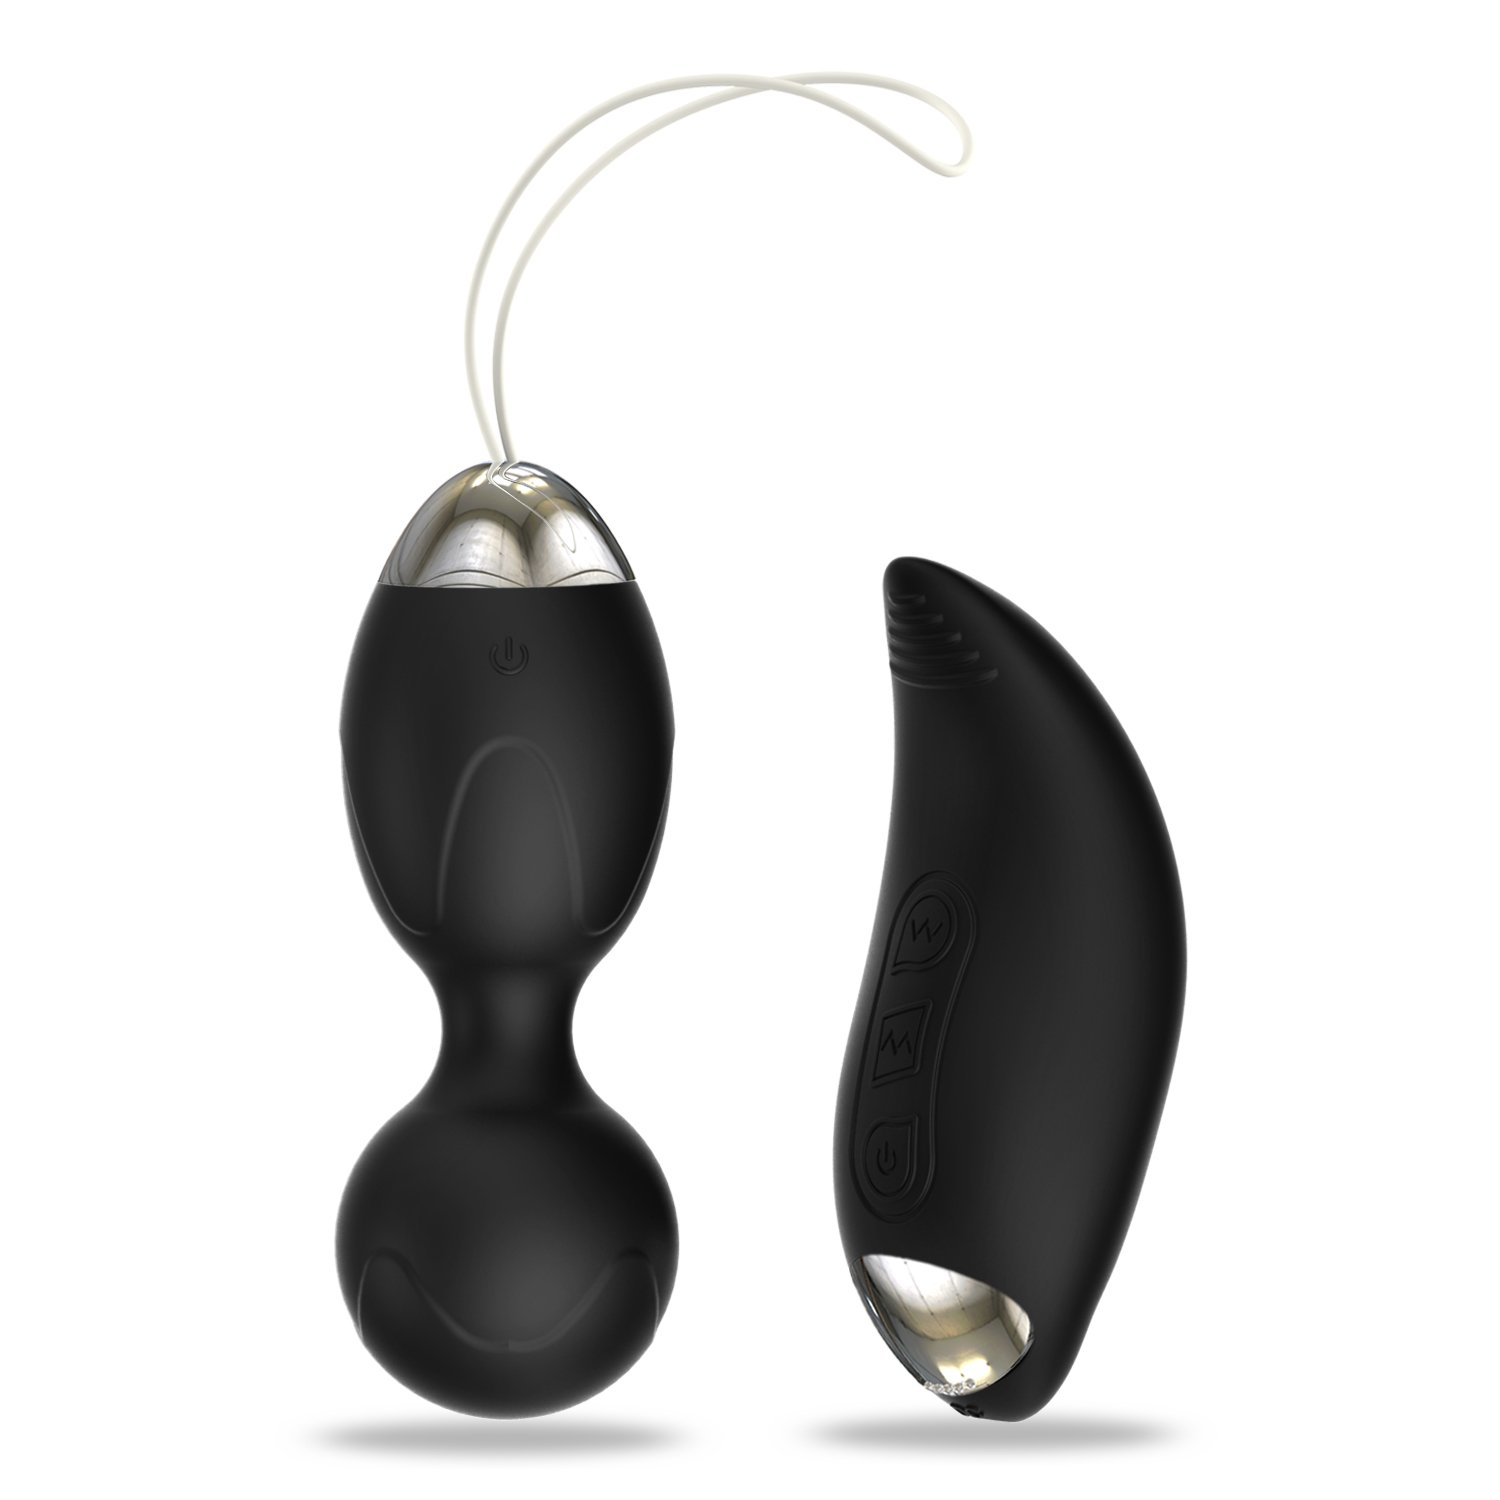 Wireless Remote Control Electrical Vibrating Kegel Balls for Shrink and Massage Vagina Muscles Bullet Mini Vibrator Egg -Best Adult Sex Toys for Women, USB Rechargeable 10 Frequency for Couples